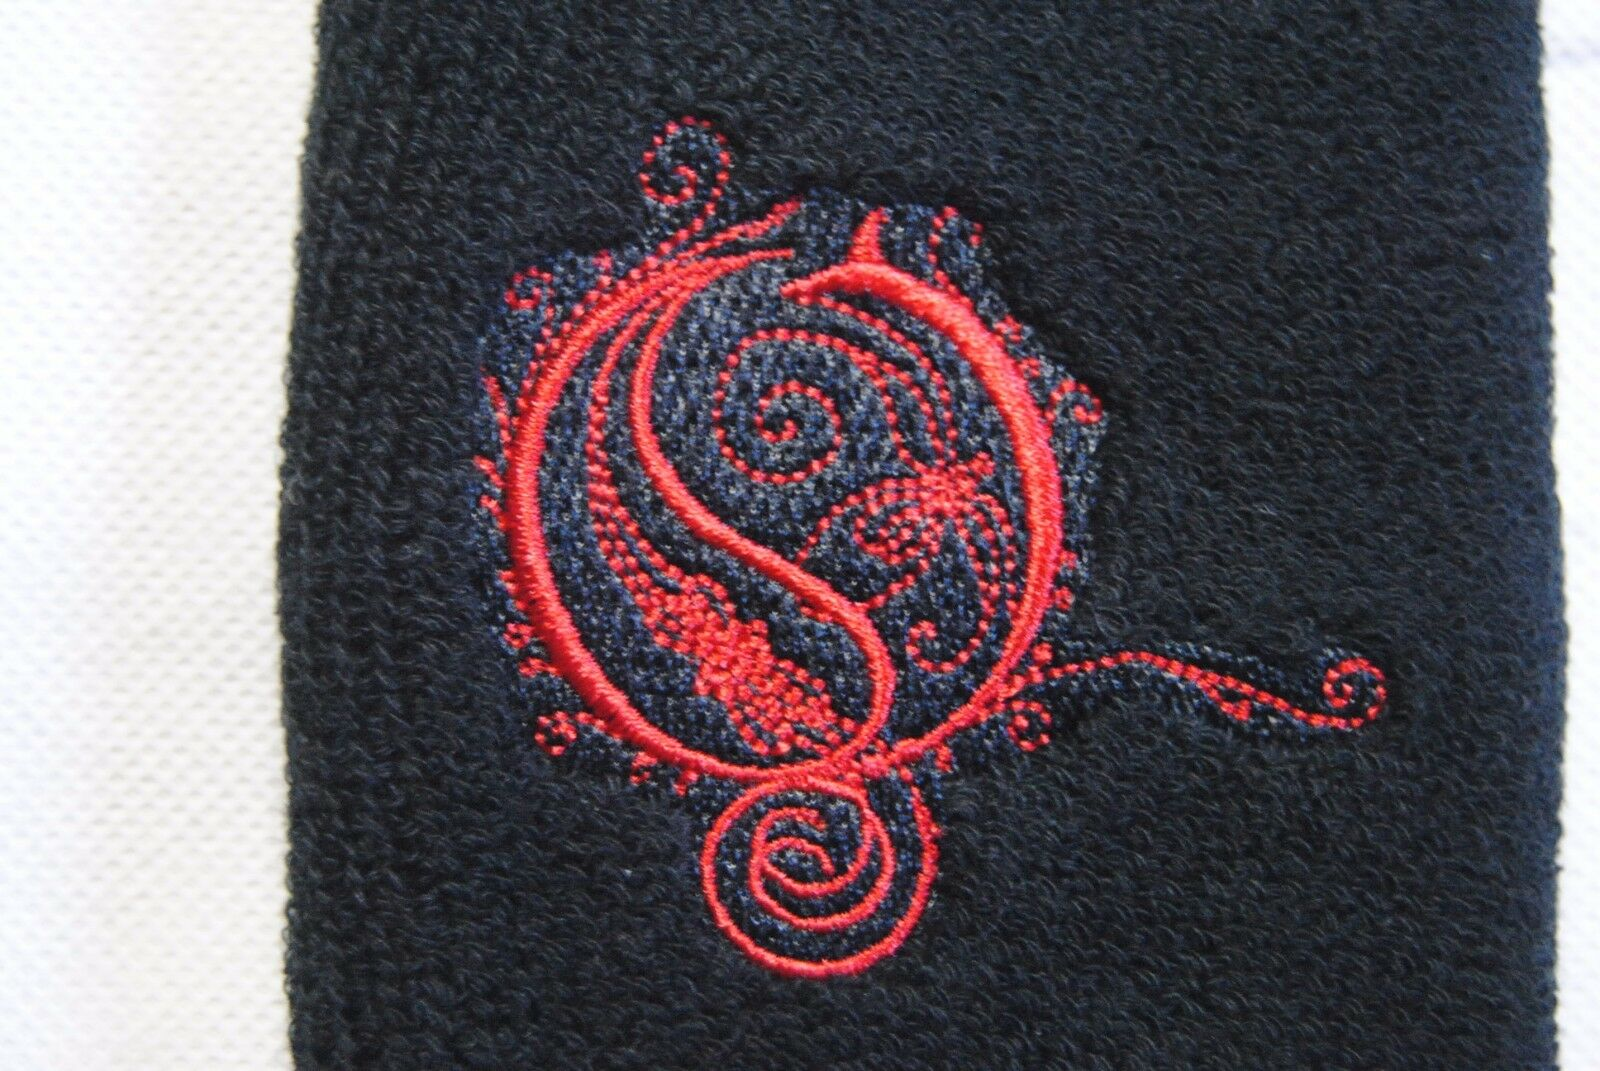 OPETH EMBROIDERED LOGO WRISTBAND SWEATBAND NEW OFFICIAL RARE HERITAGE STILL LIFE